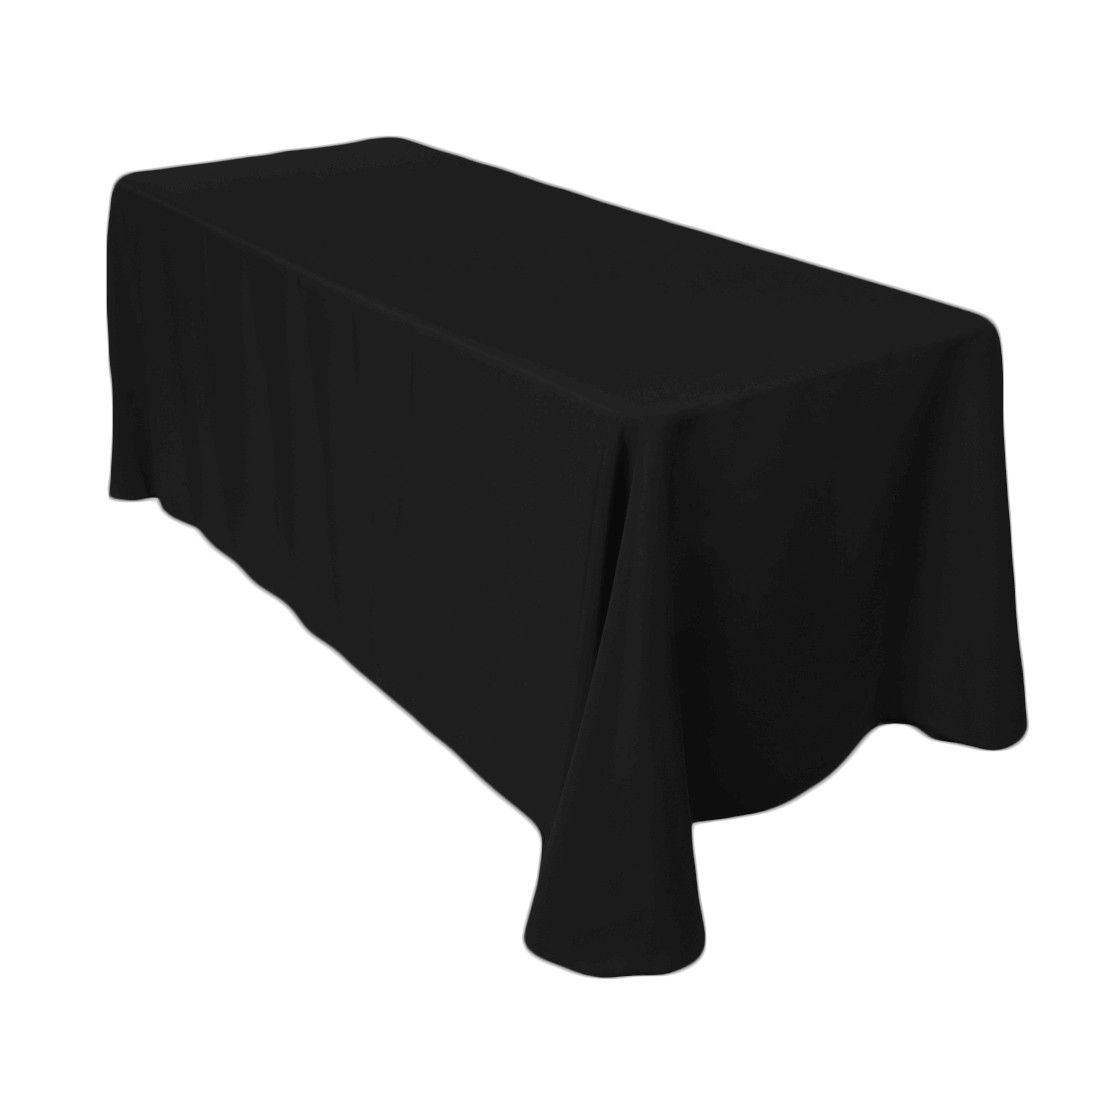 90 x 156 inch Rectangular Polyester Tablecloth Black on a